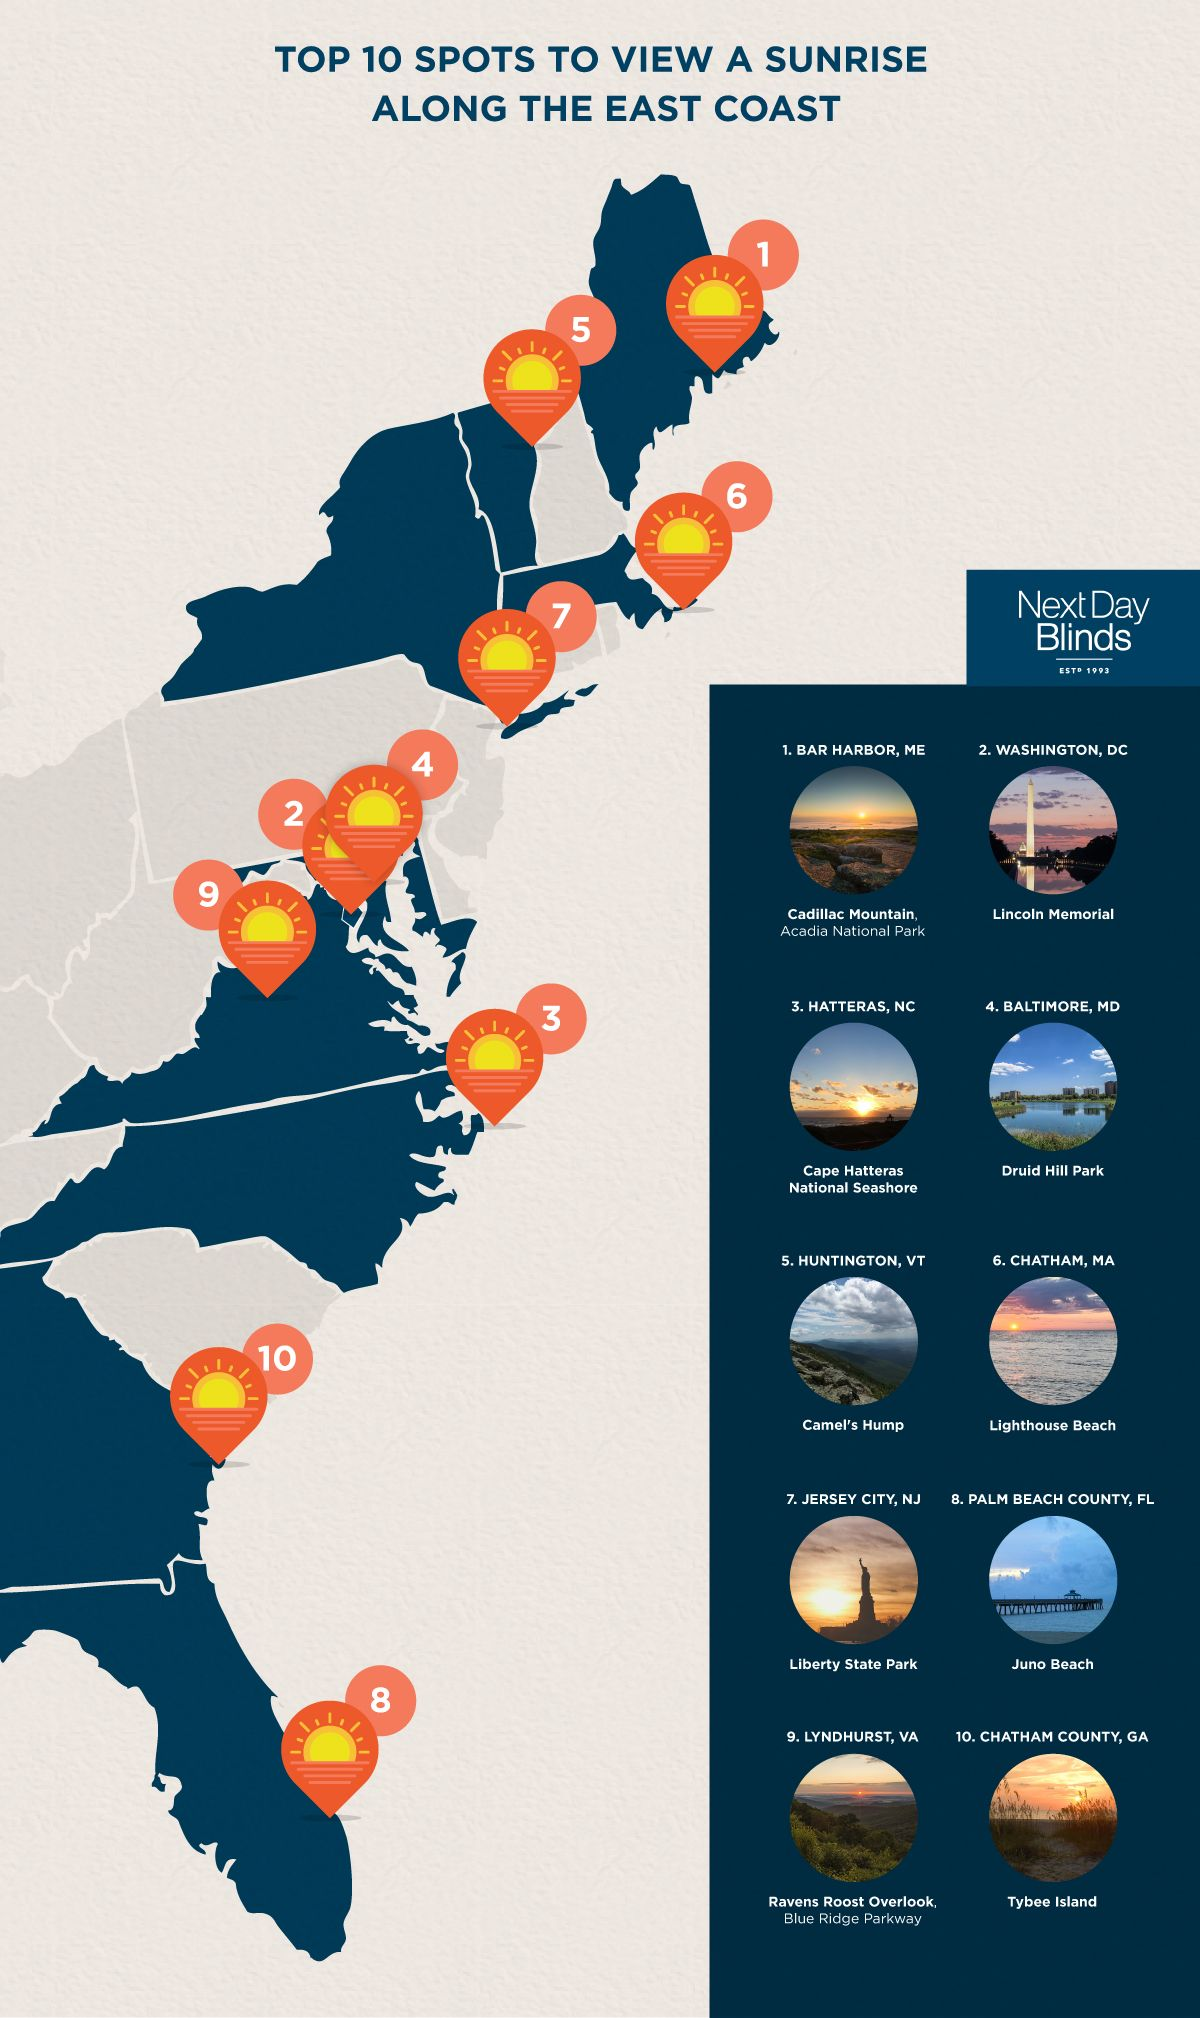 Top 10 Spots To View A Sunrise Along The East Coast